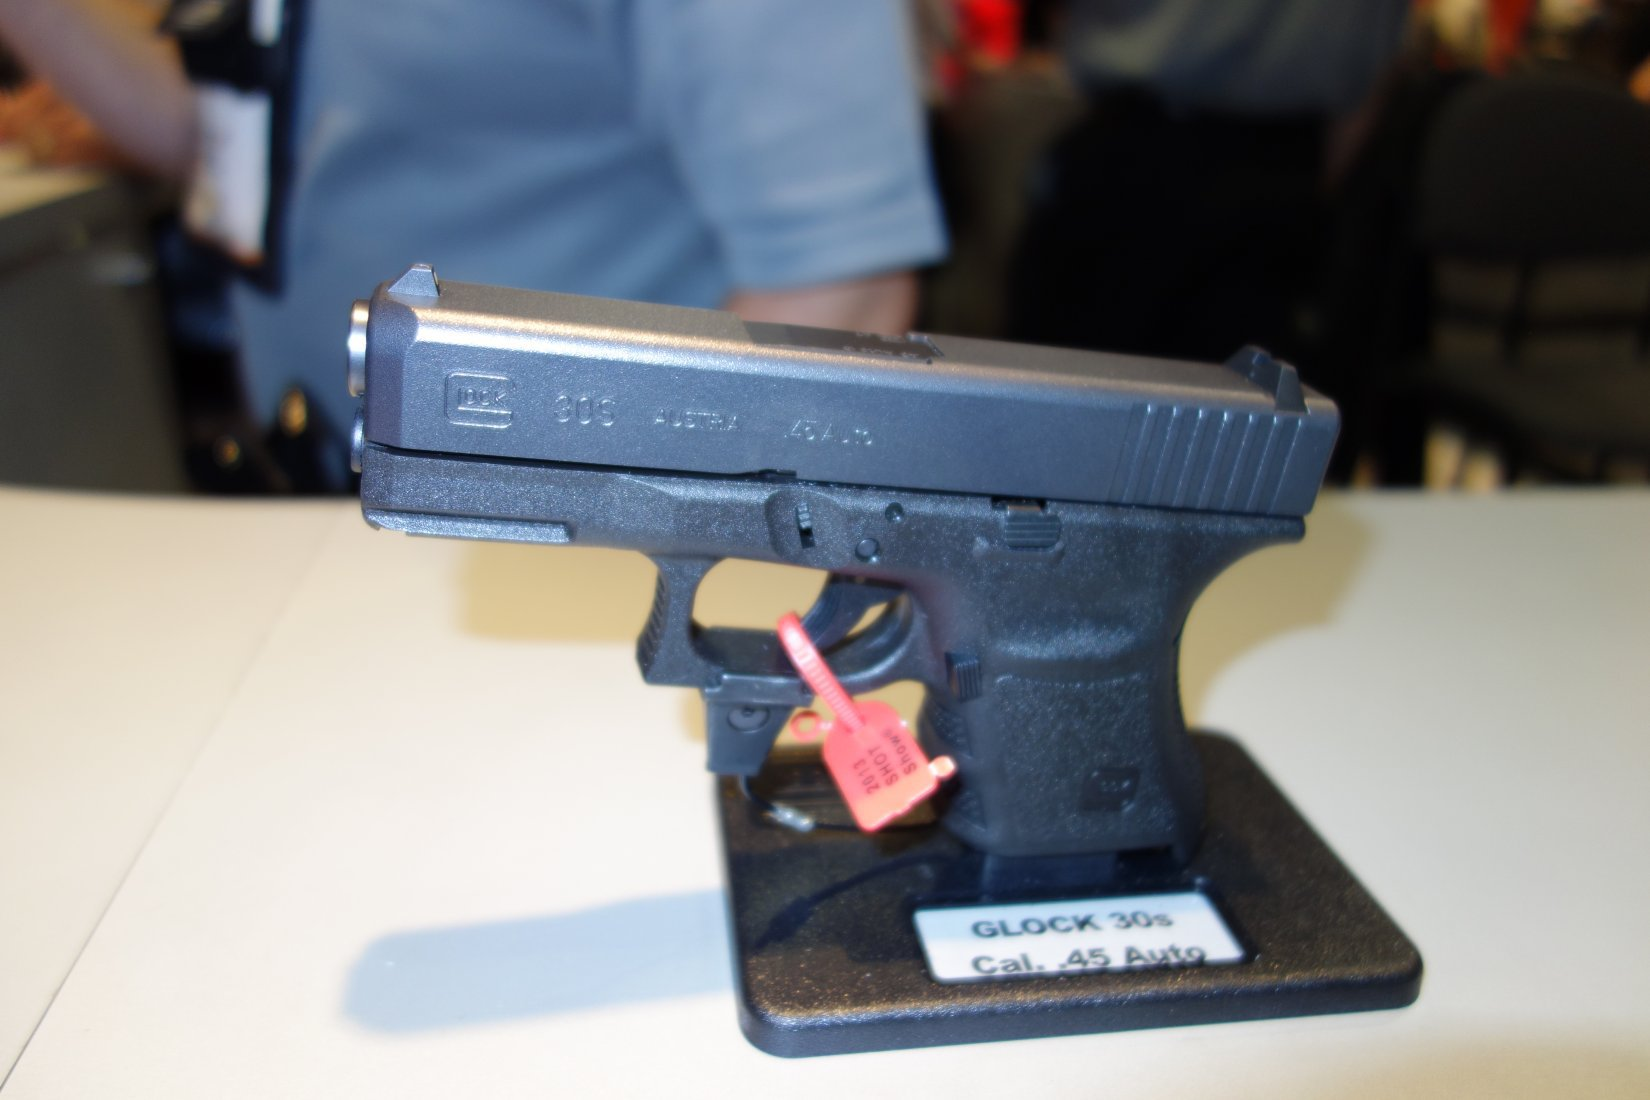 Glock 30S Compact .45 ACP Pistol SHOT Show 2013 David Crane DefenseReview.com DR 1 Glock 30S (G30S) Compact .45 ACP Semi Auto High Capacity Combat/Tactical Pistol for Concealed Carry (CCW) Applications and Undercover Operations: Glock 36 Slide Meets Glock 30SF Frame! (Video!)